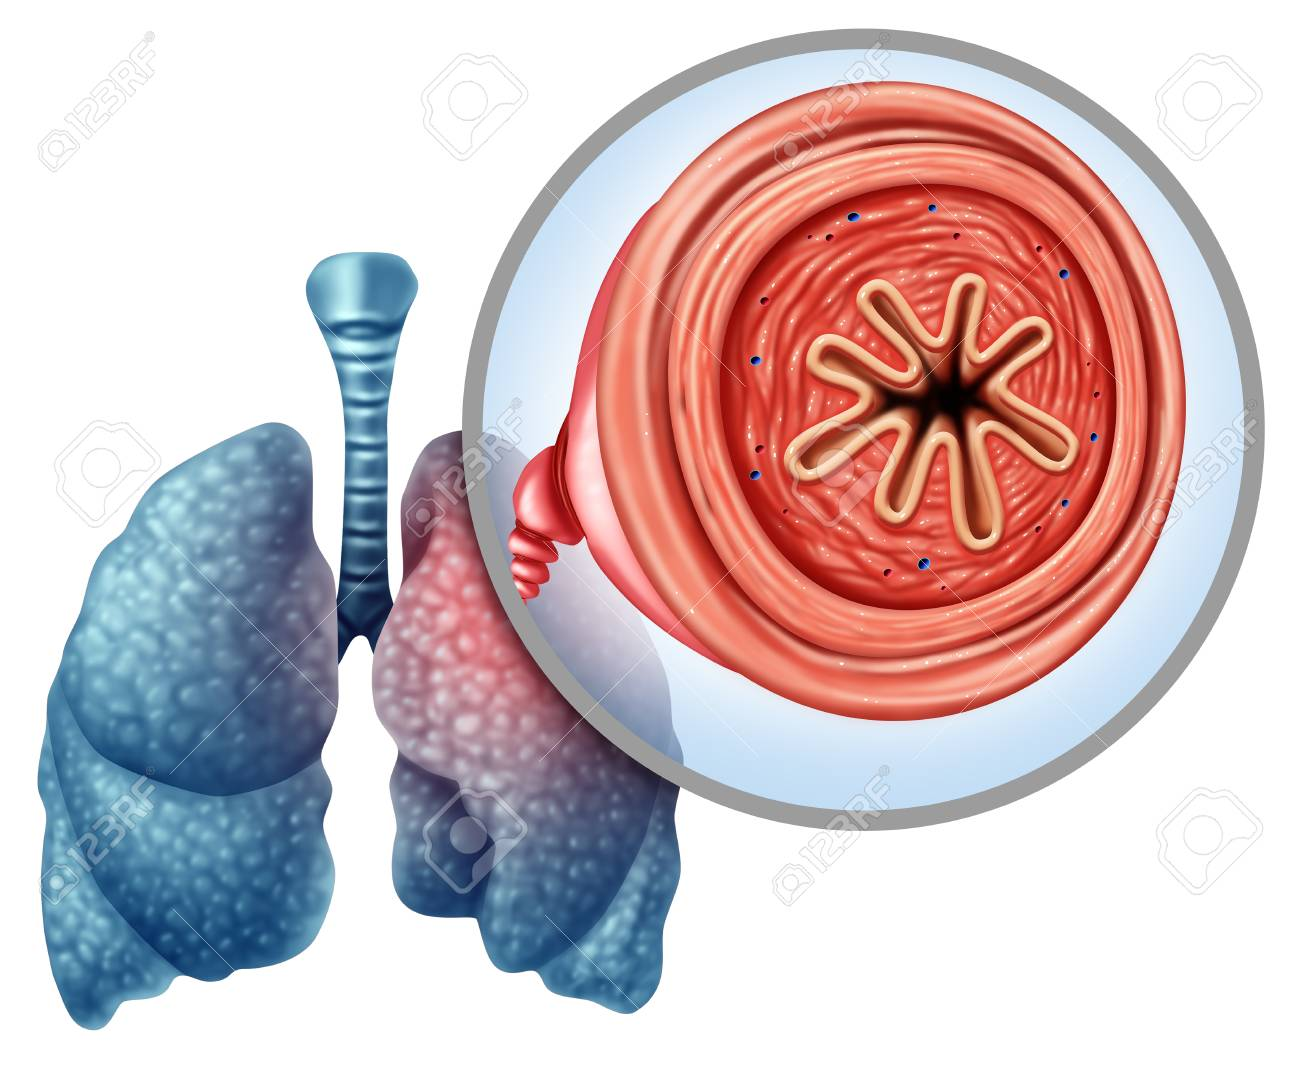 COPD chronic obstructive pulmonary disease as a medical concept for lung illness and emphysema with 3D illustration elements. - 101189288